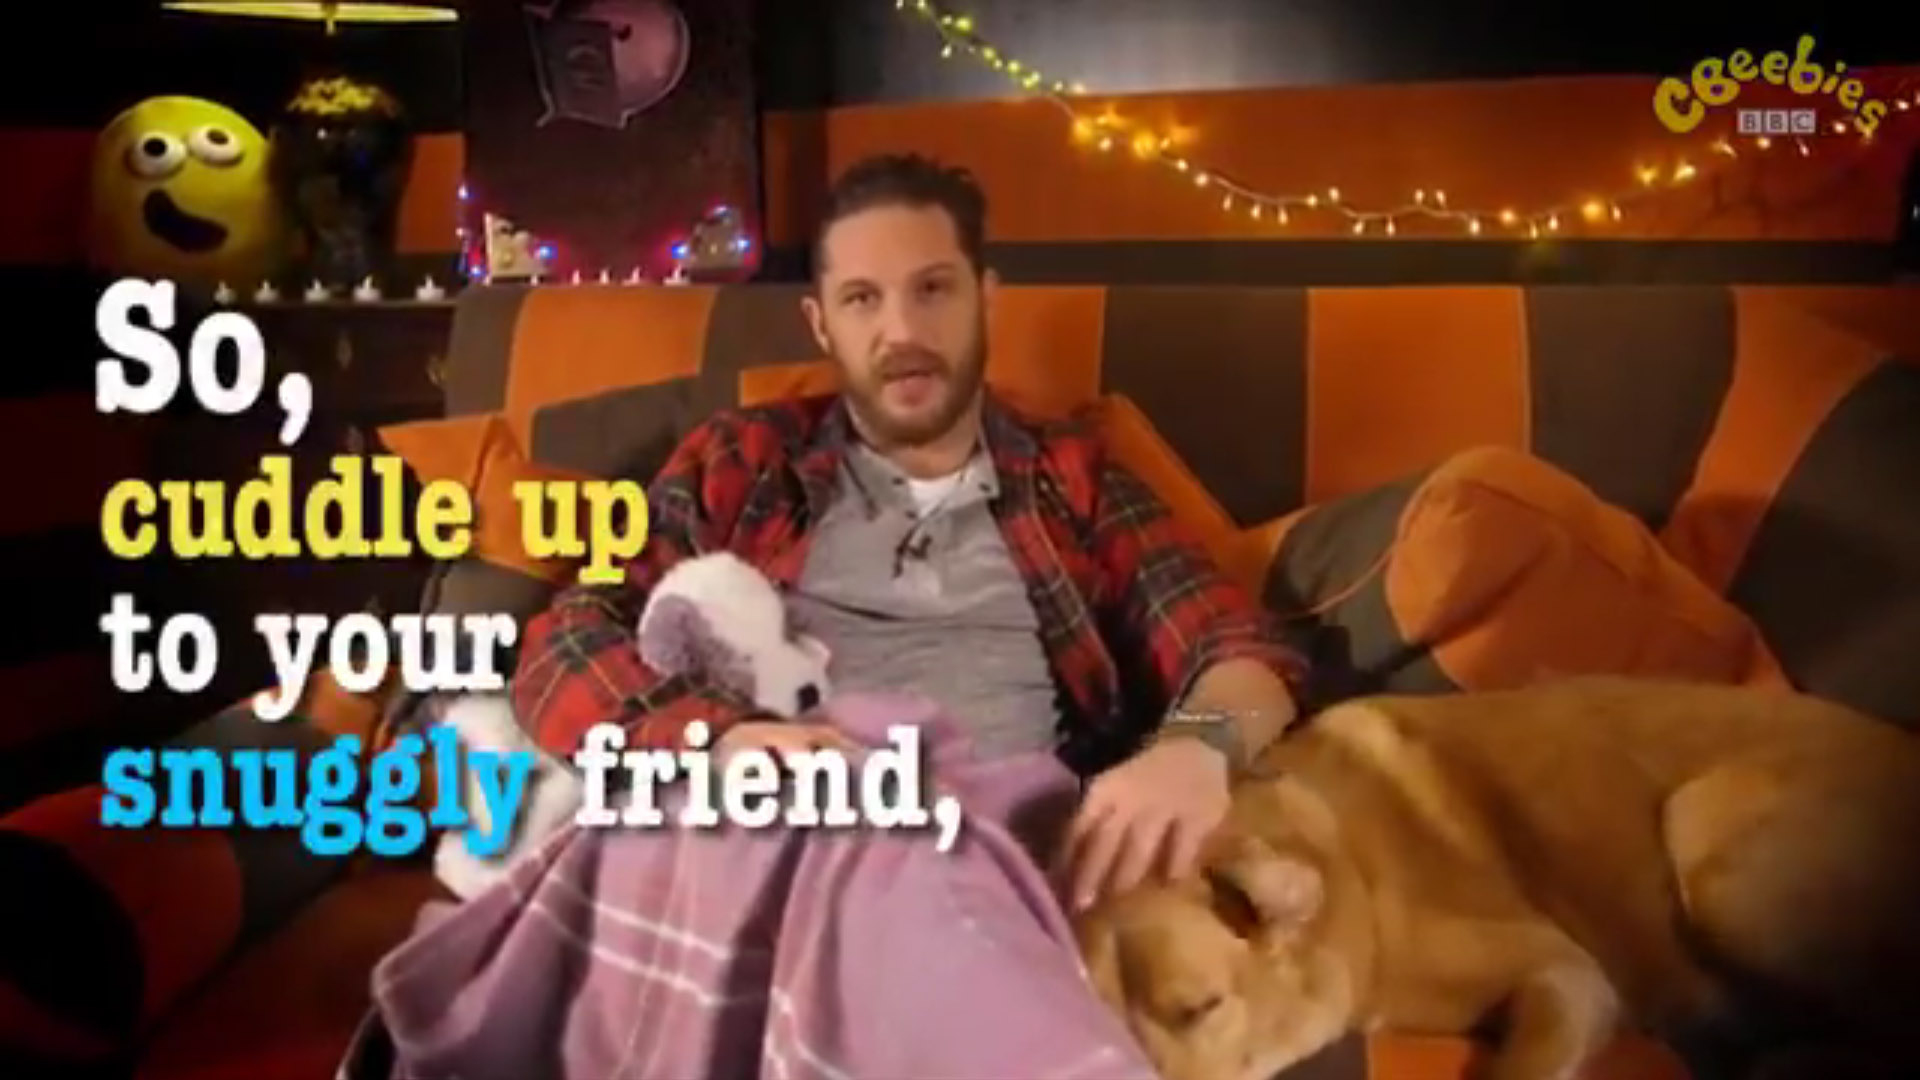 Dolly Parton follows in Tom Hardy's footsteps with CBeebies Bedtime Stories stint